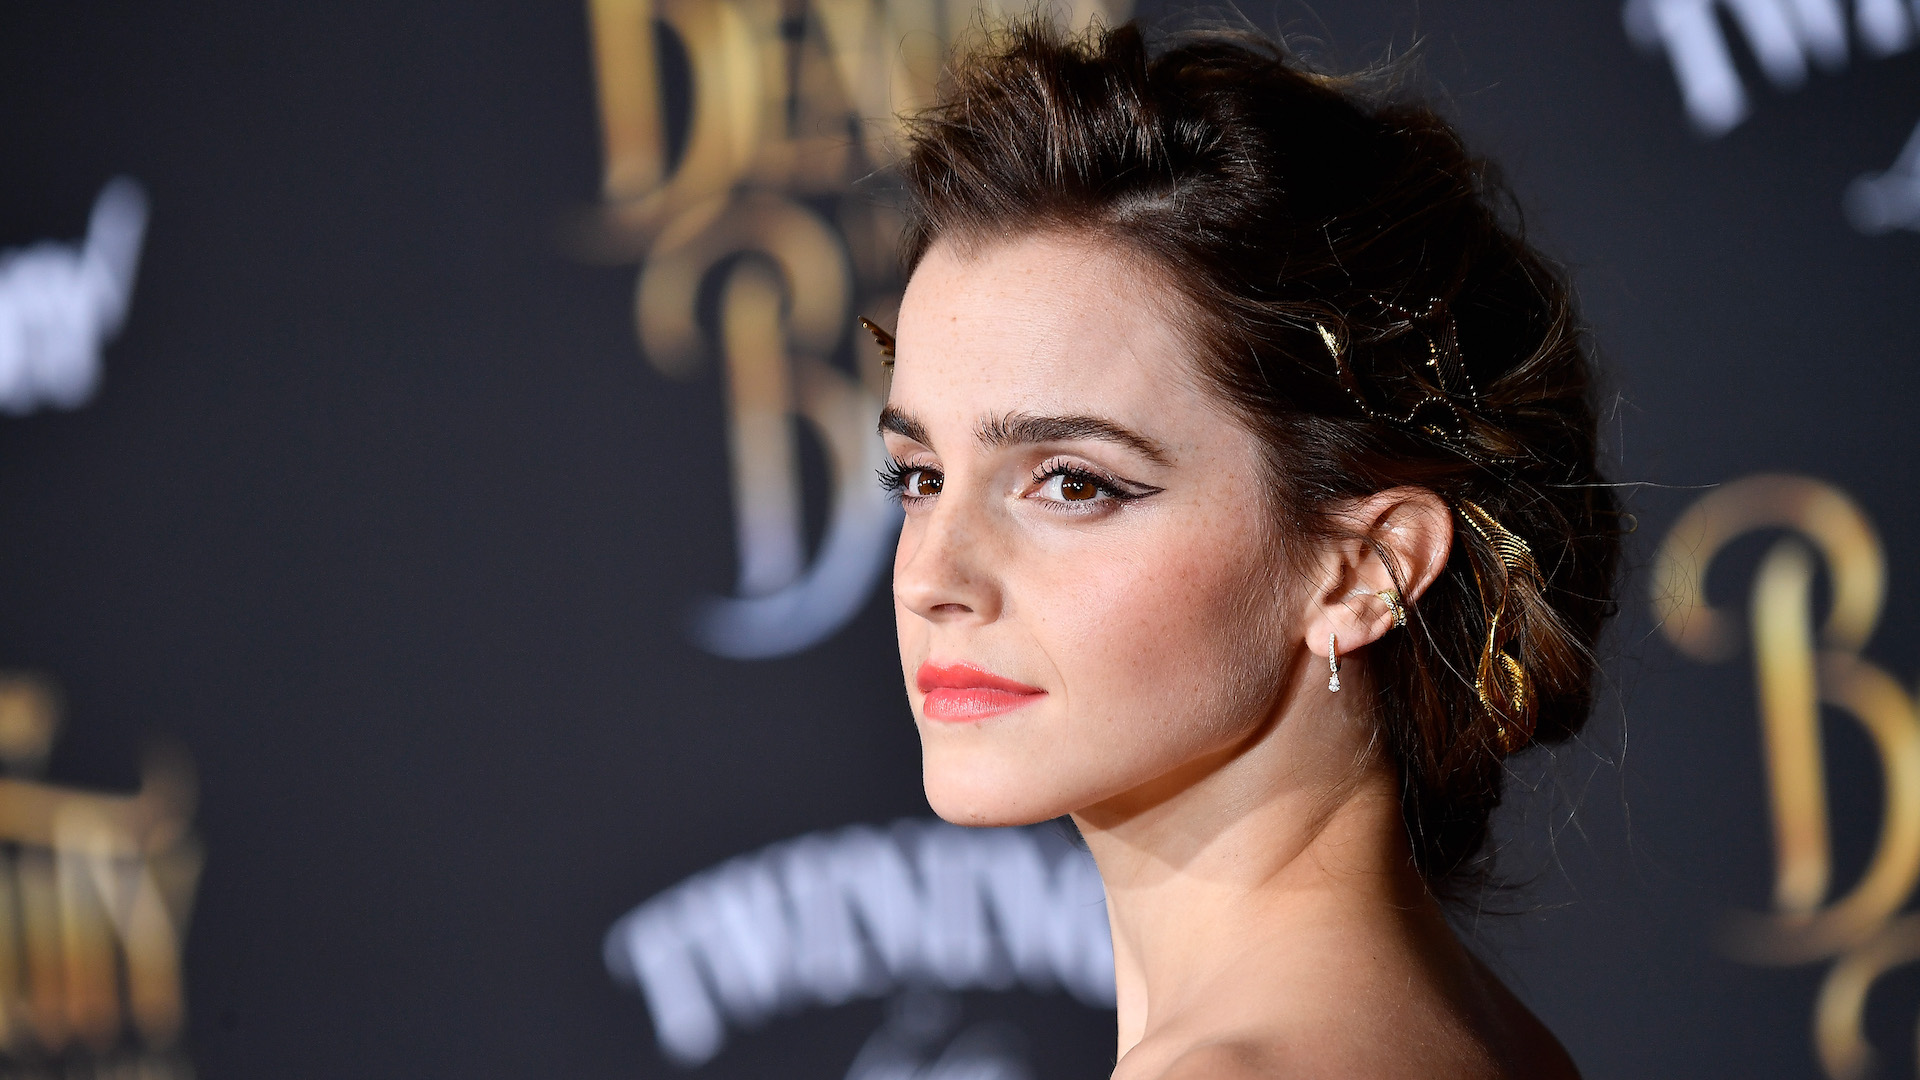 Emma Watson's Rep Gives Statement on Report that She's 'Given Up' Acting